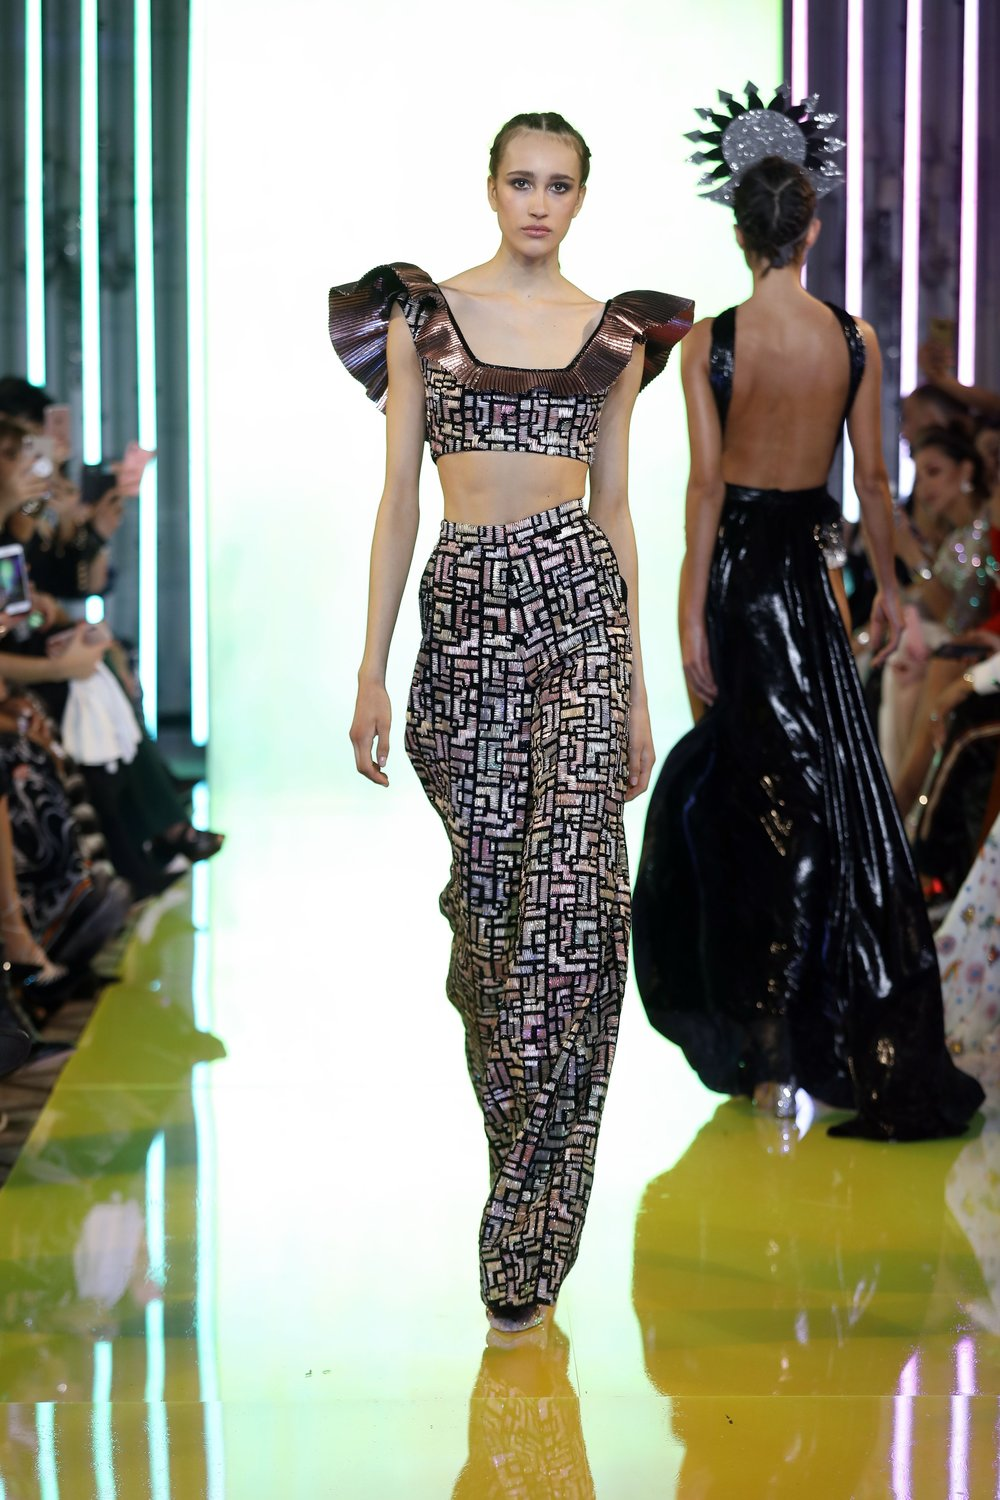 SS19-28- Black Ruffled Square Neckline Top And Wide Pants Geometrically Embellished With Metal Colored Threads, Matte And Shiny Glass Beads .jpg